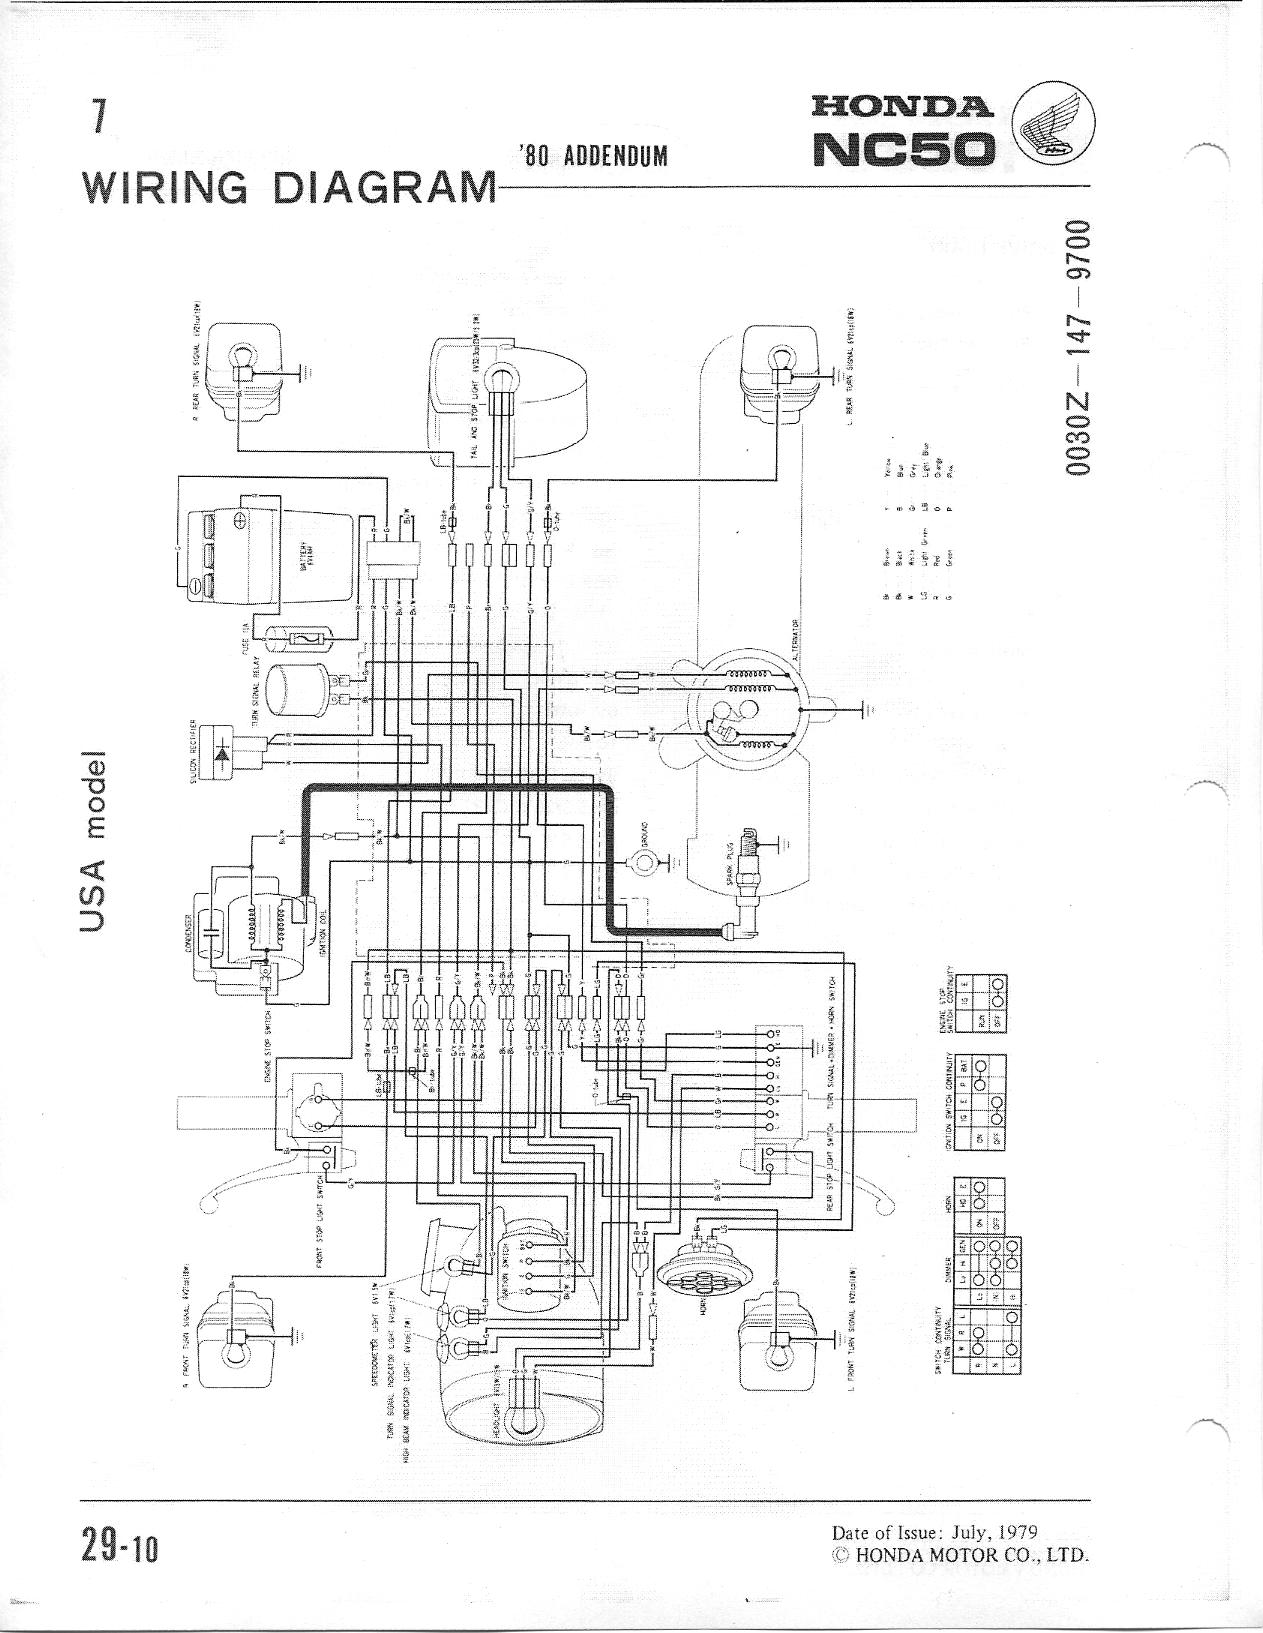 1980 Honda Express NC50 wiring questions — Moped Army